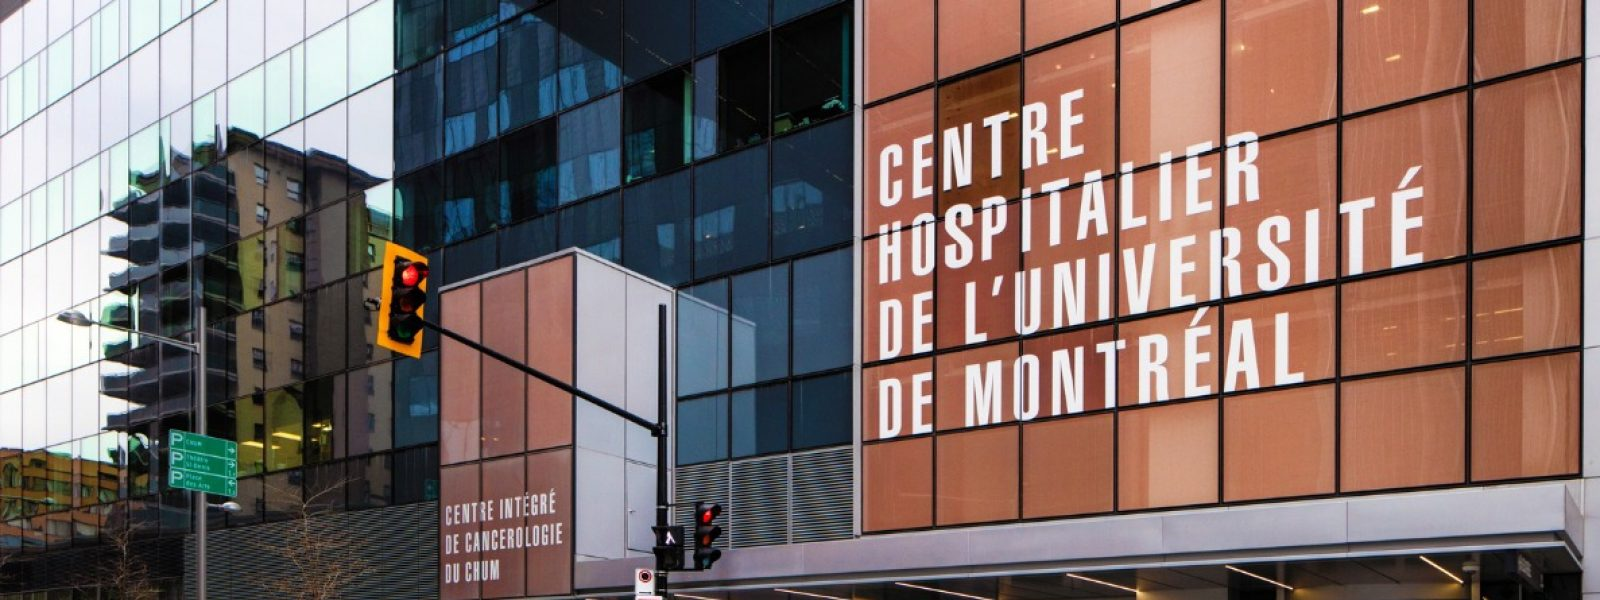 Montreal's new CHUM hospital and research facility